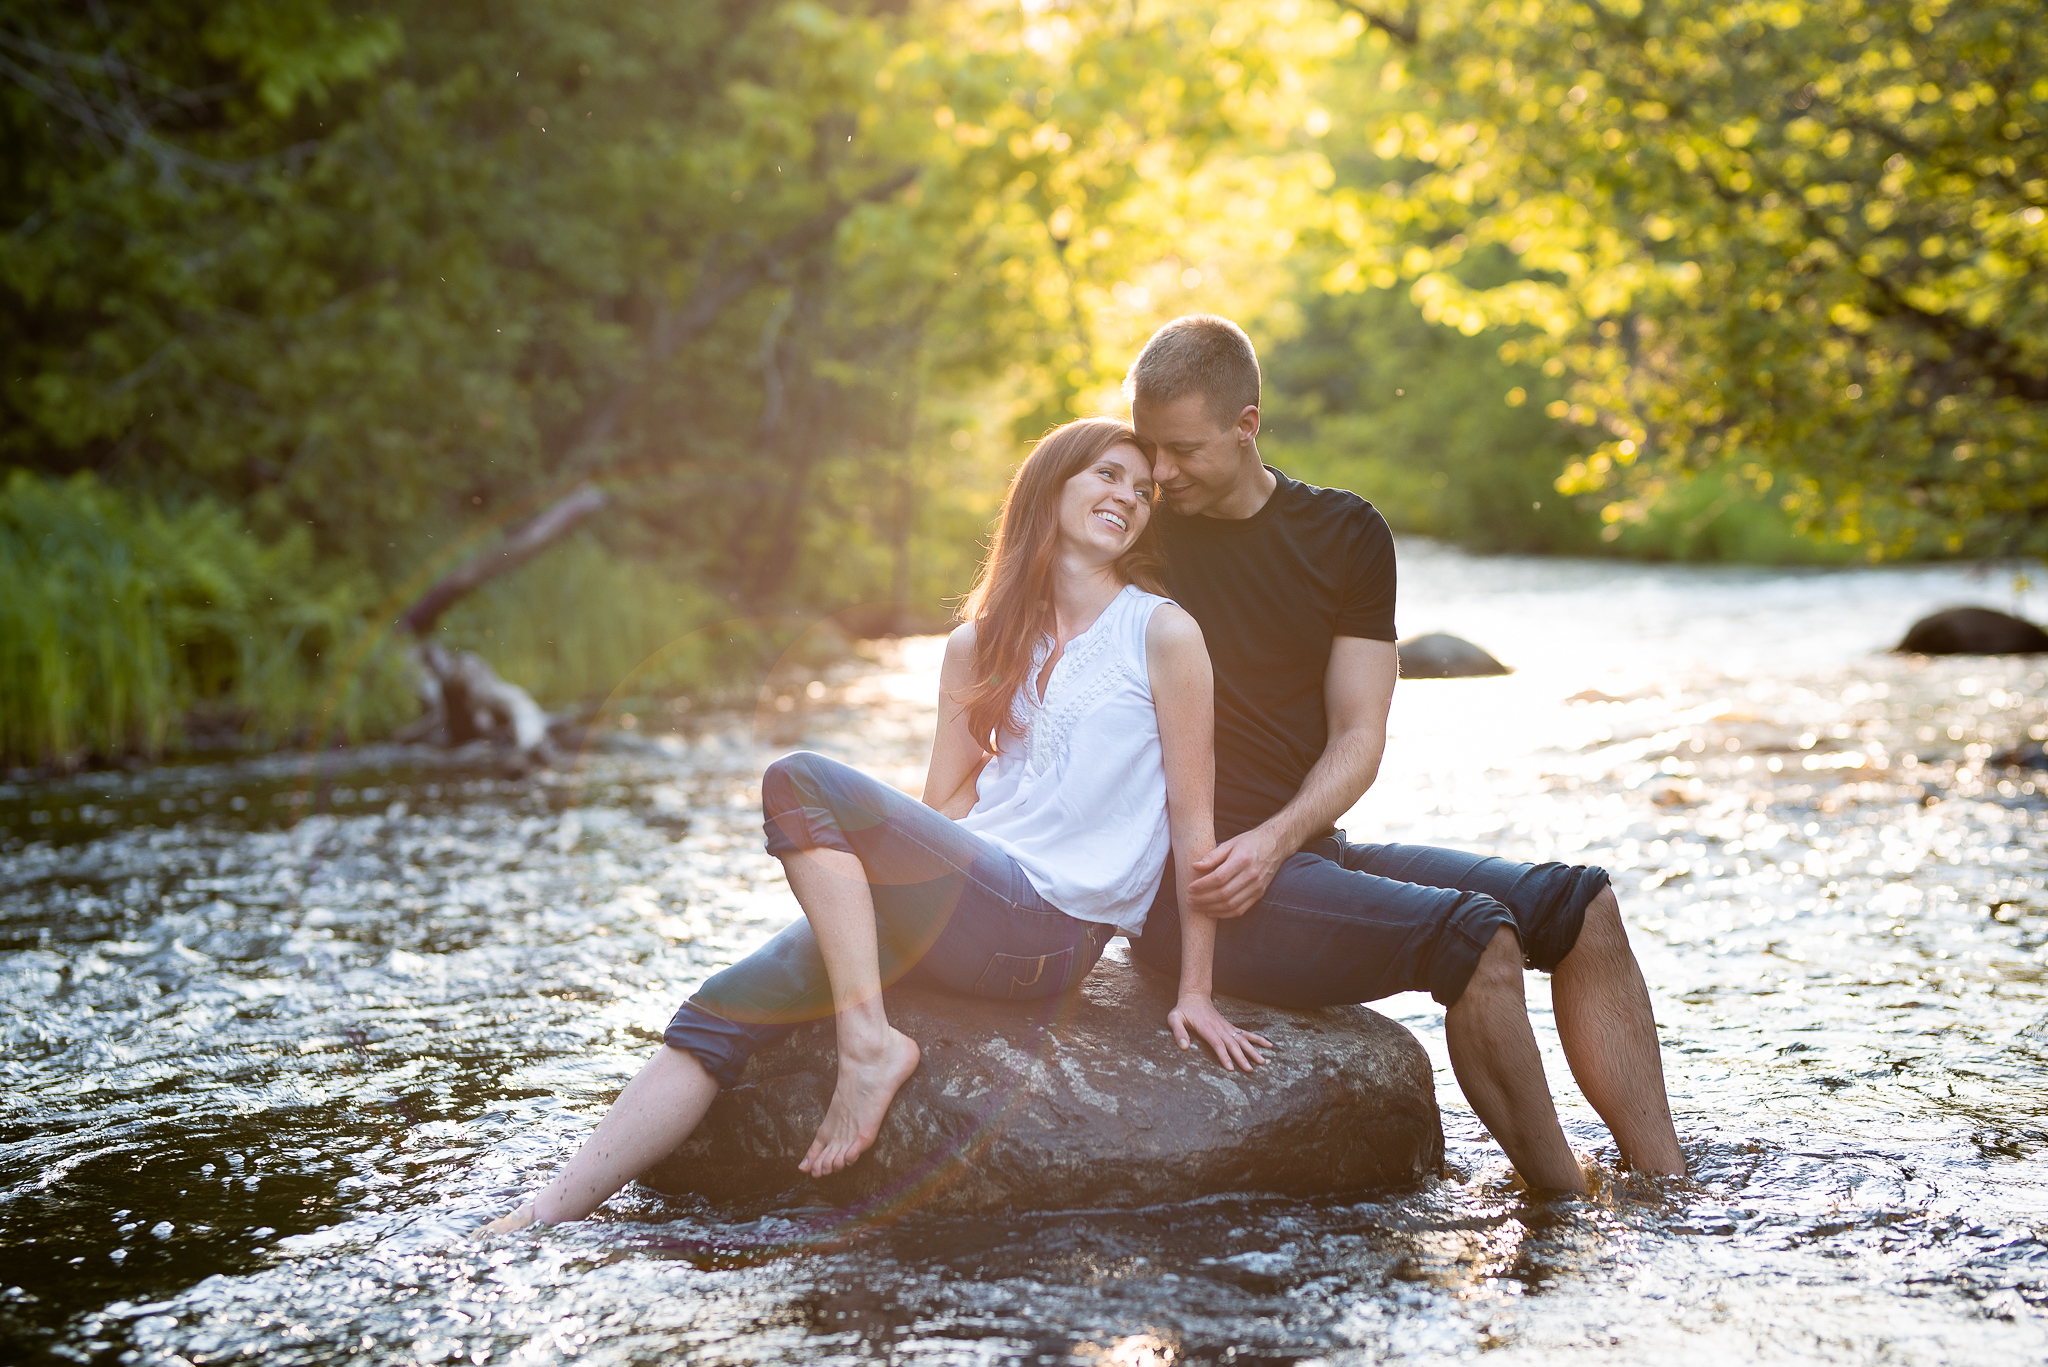 Couples439NaomiLuciennePhotography062019-Edit.jpg